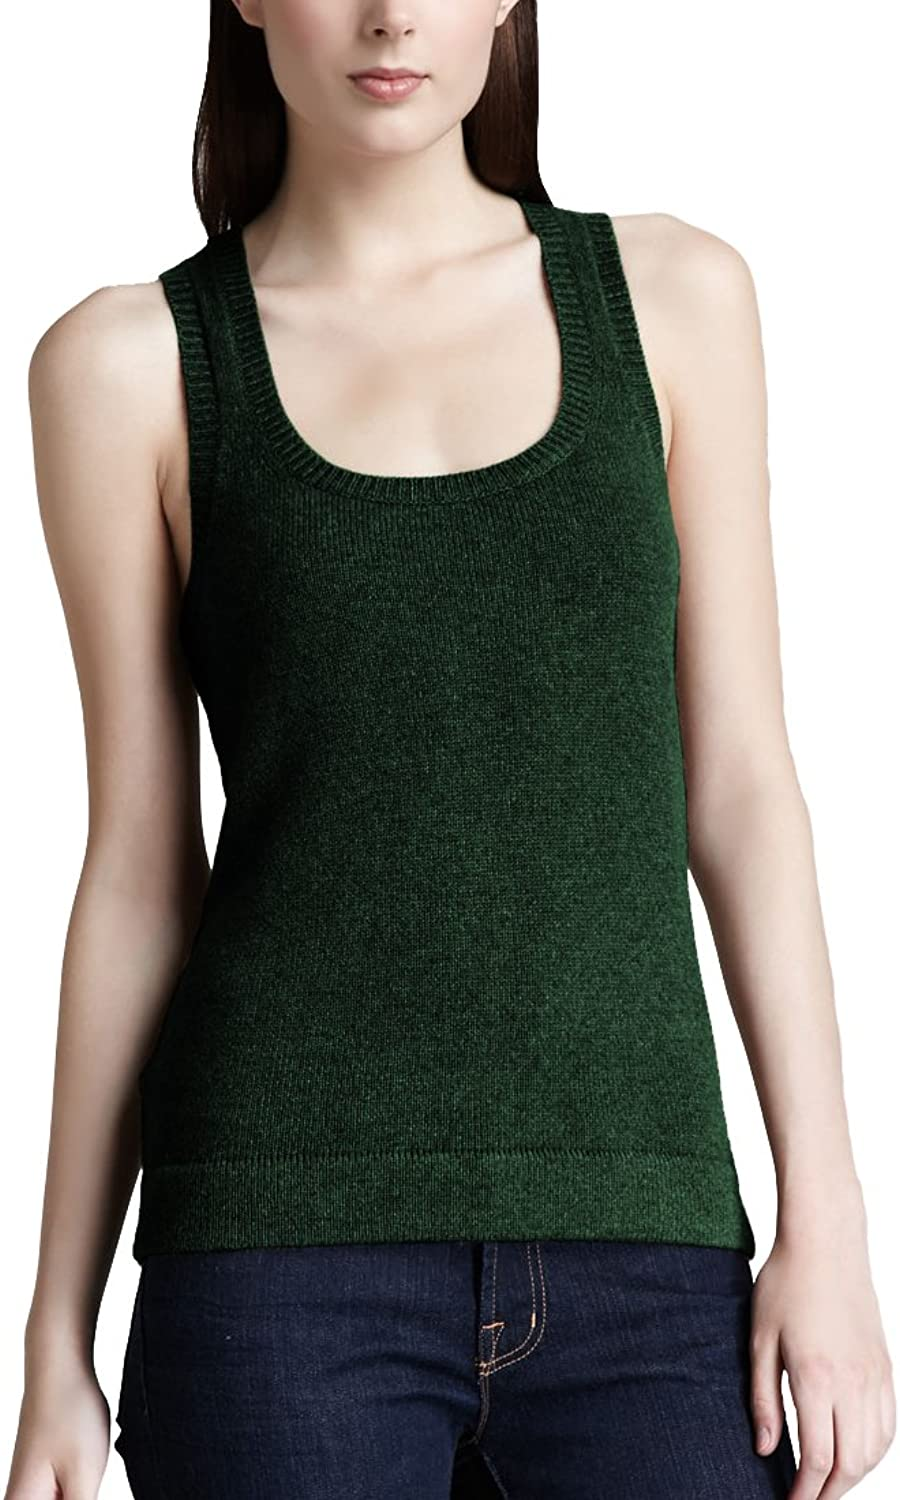 Parisbonbon Women's 100% Cashmere Racer Back Tank Top